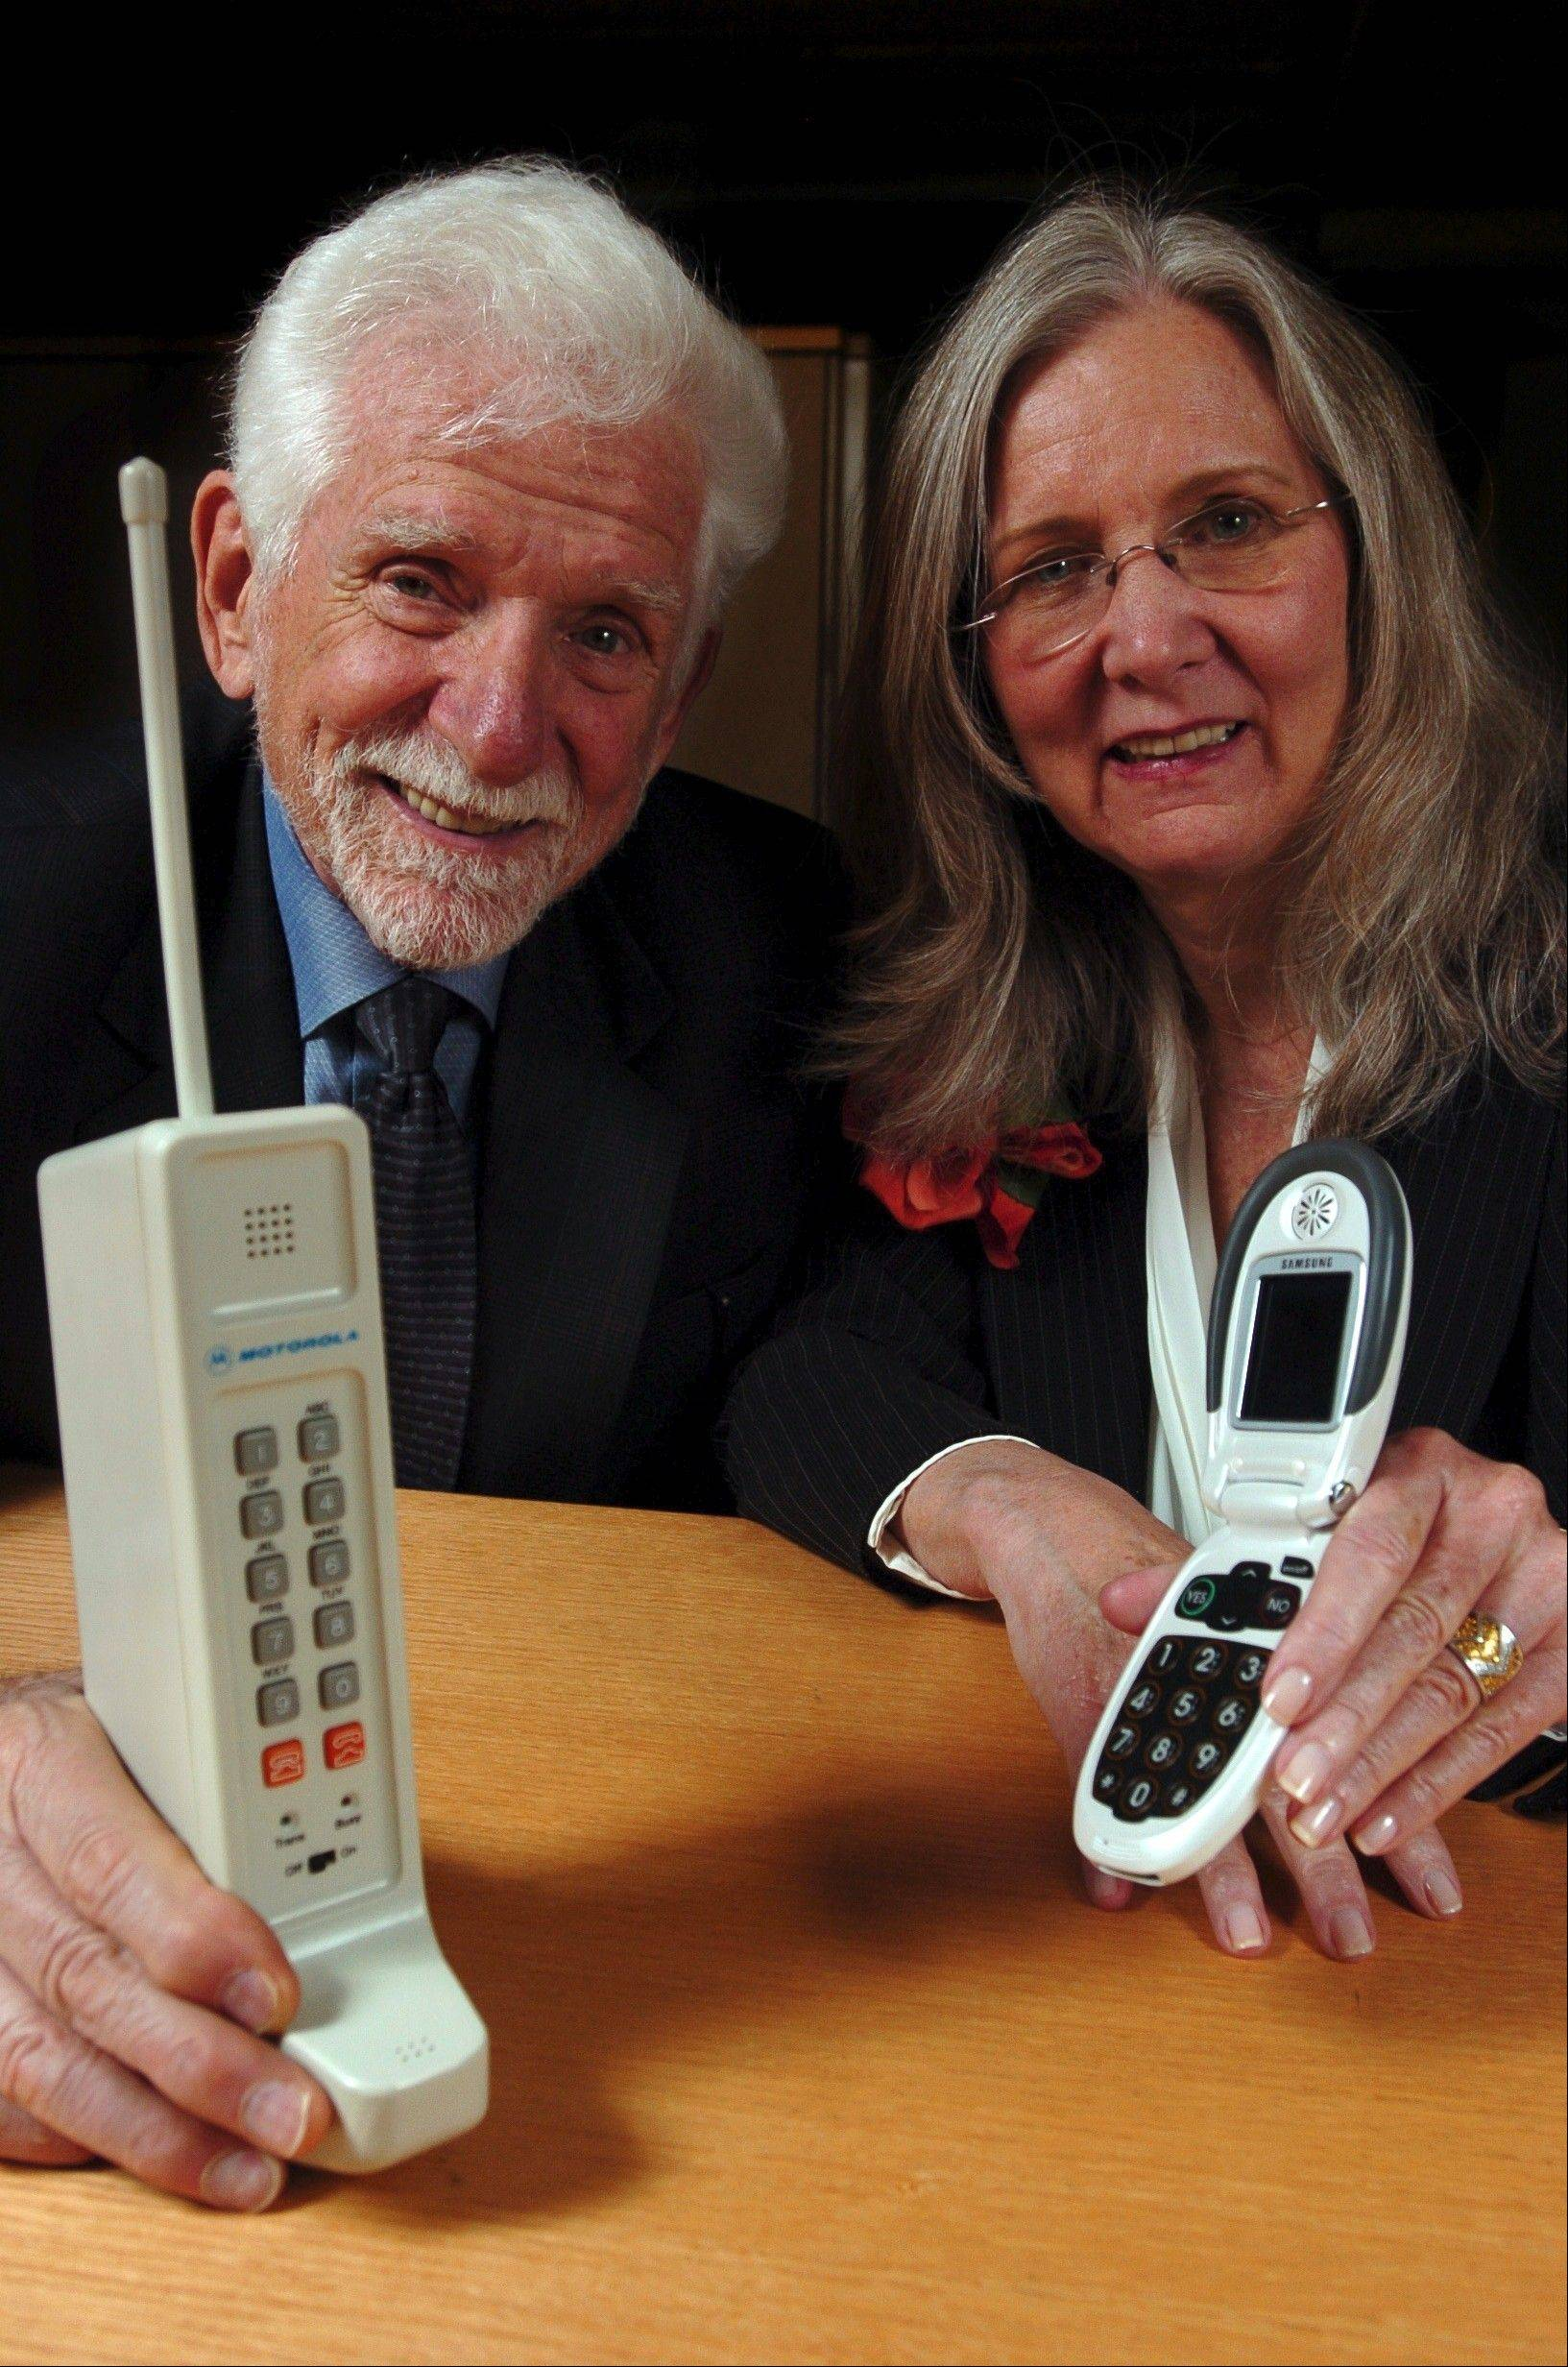 Marty Cooper, who led the Motorola team in 1973 to create the first cellphone called the DynaTac, with his wife Arlene Harris, the inventor of the Jitterbug cellphone for seniors.